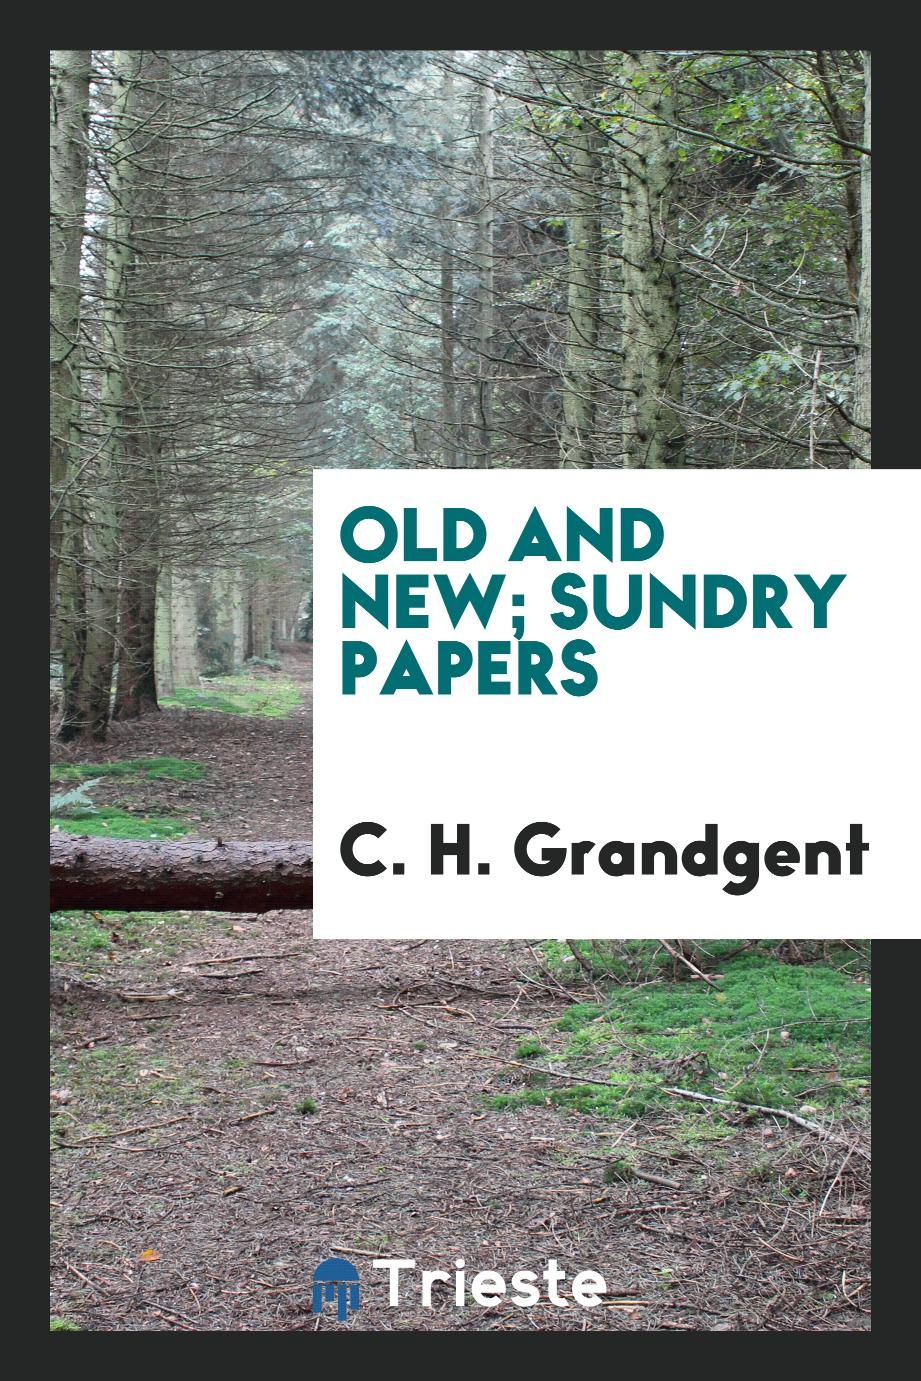 Old and new; sundry papers